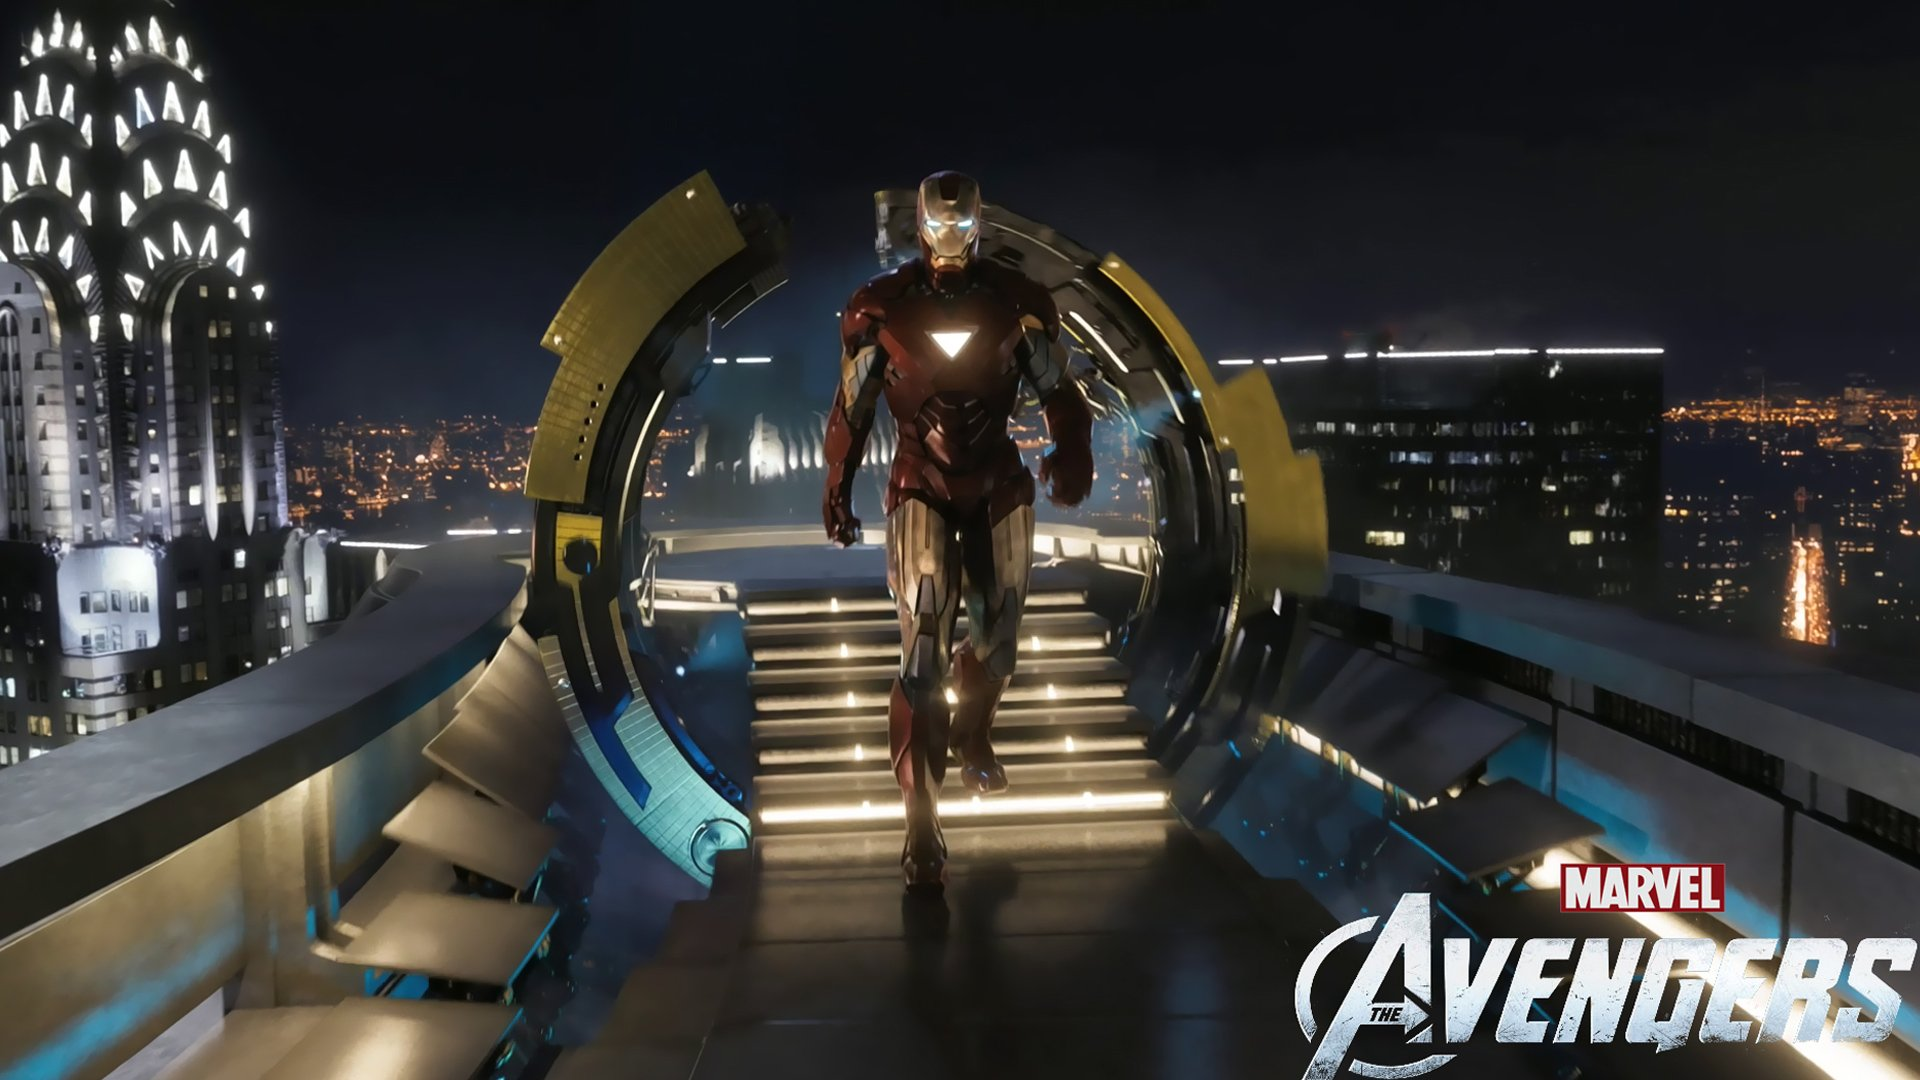 Iron Man in The Avengers Movie Wallpapers HD Wallpapers 1920x1080